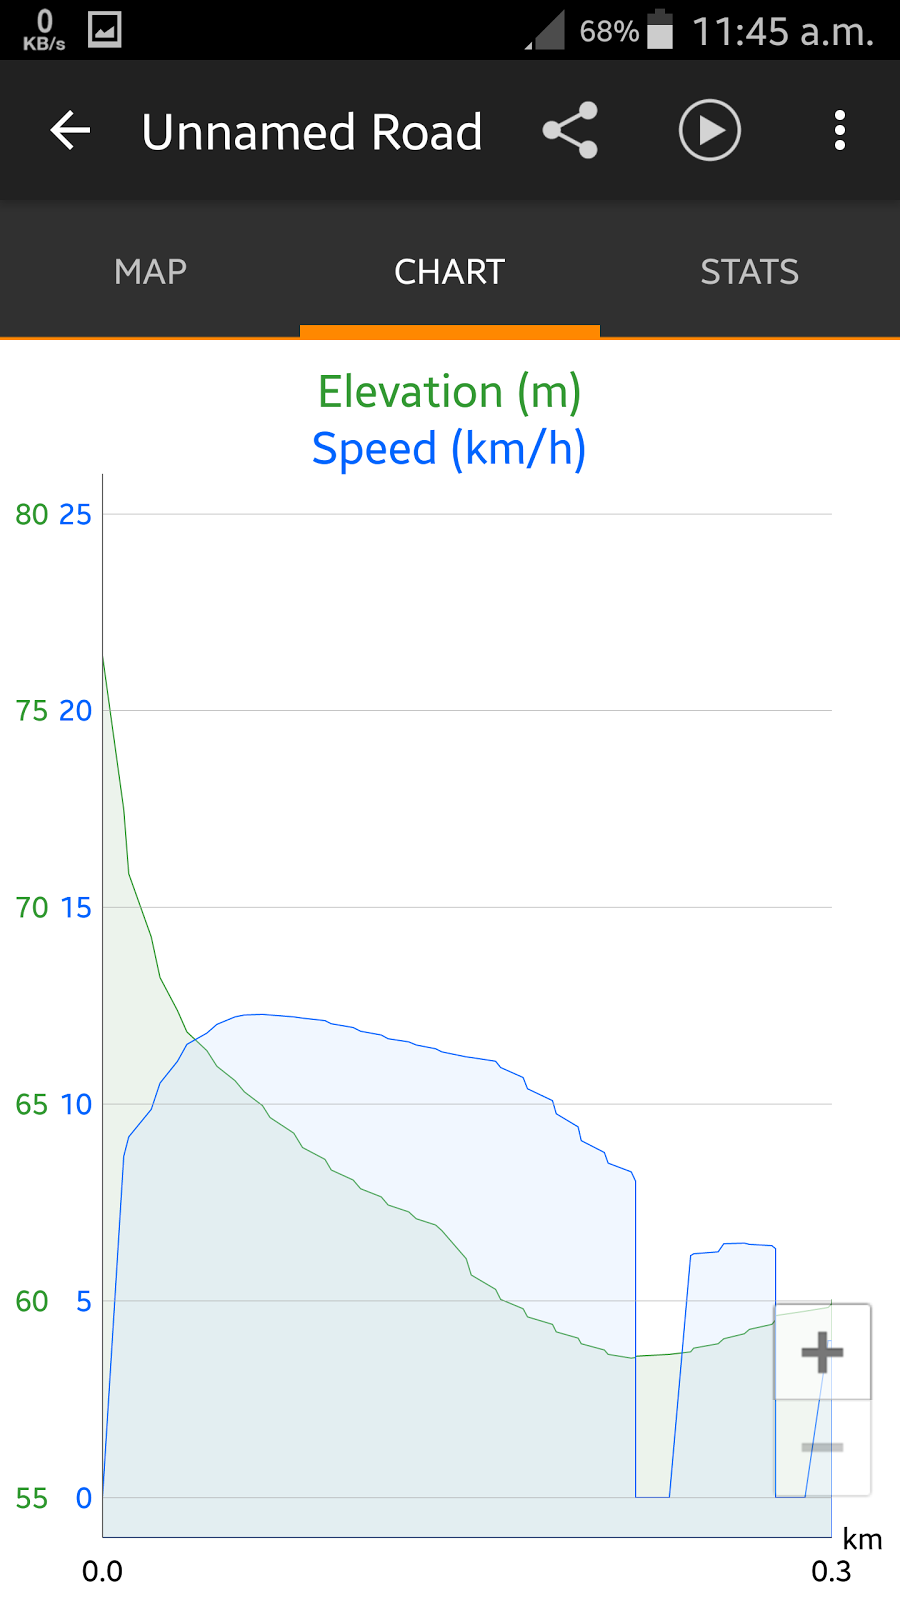 According to the data from the app the ascend of hill what we see is not actually ascending but it is descending